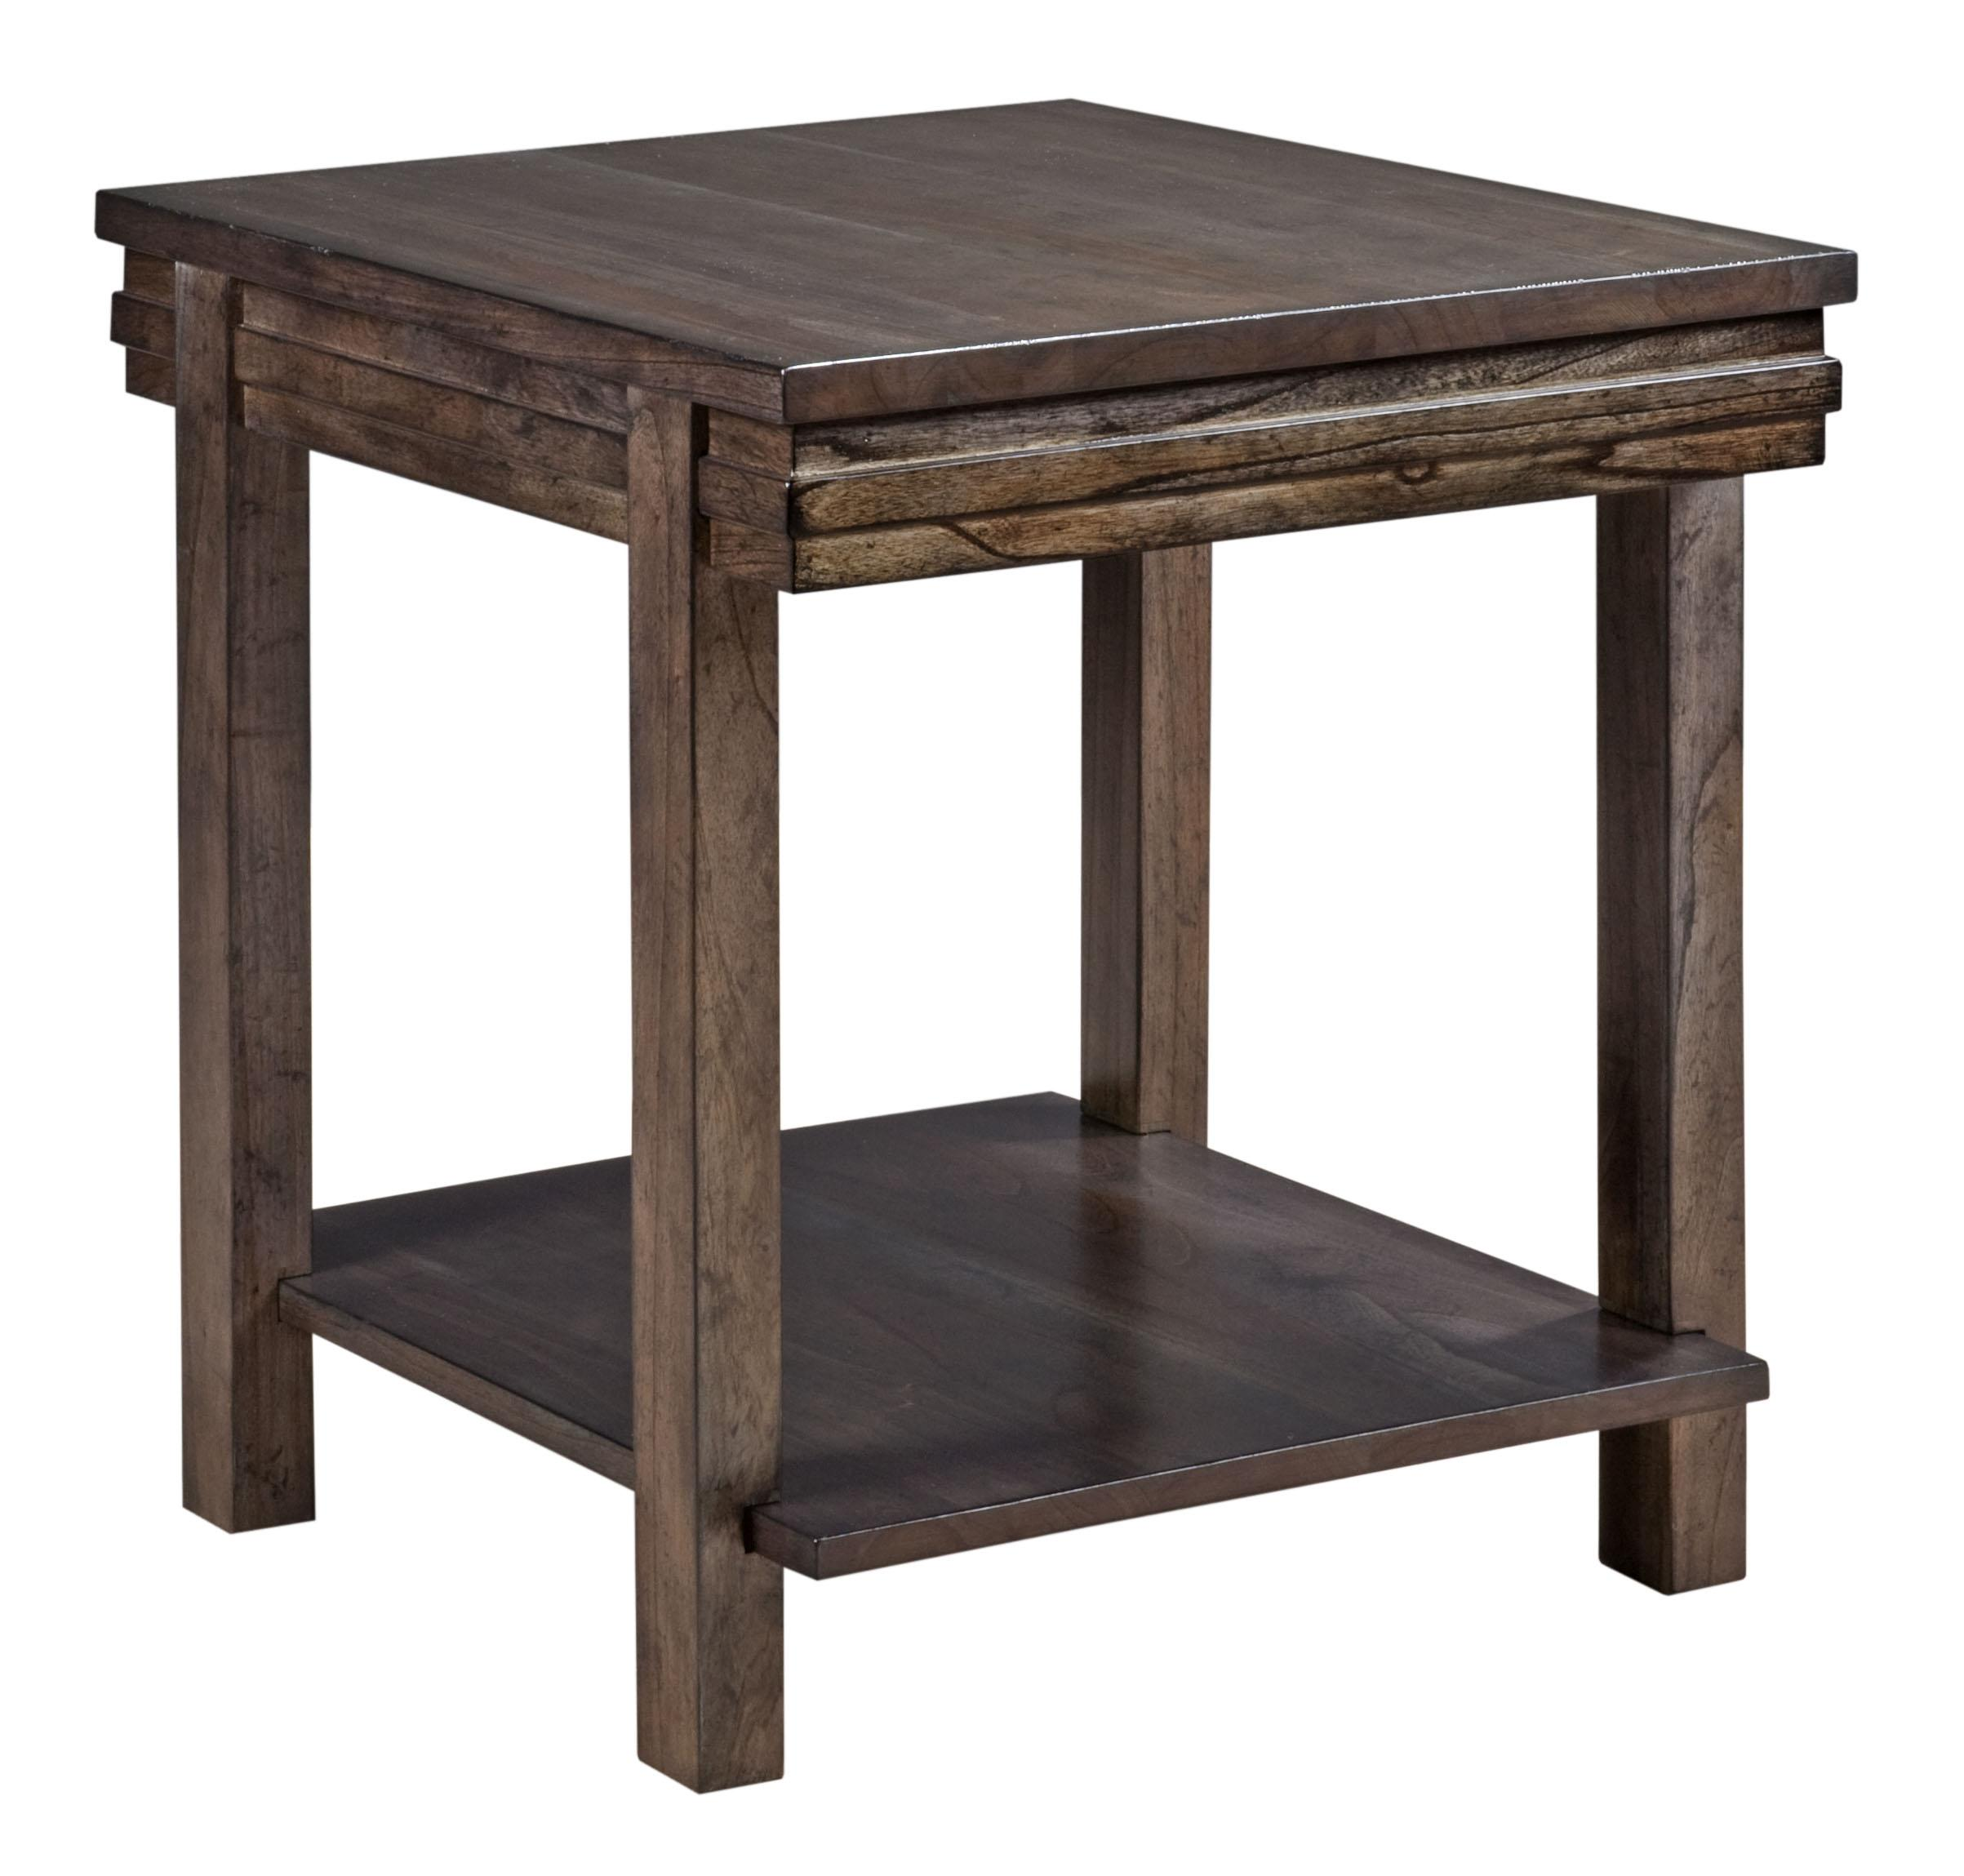 Kincaid Furniture Montreat Cantilever End Table - Item Number: 84-022